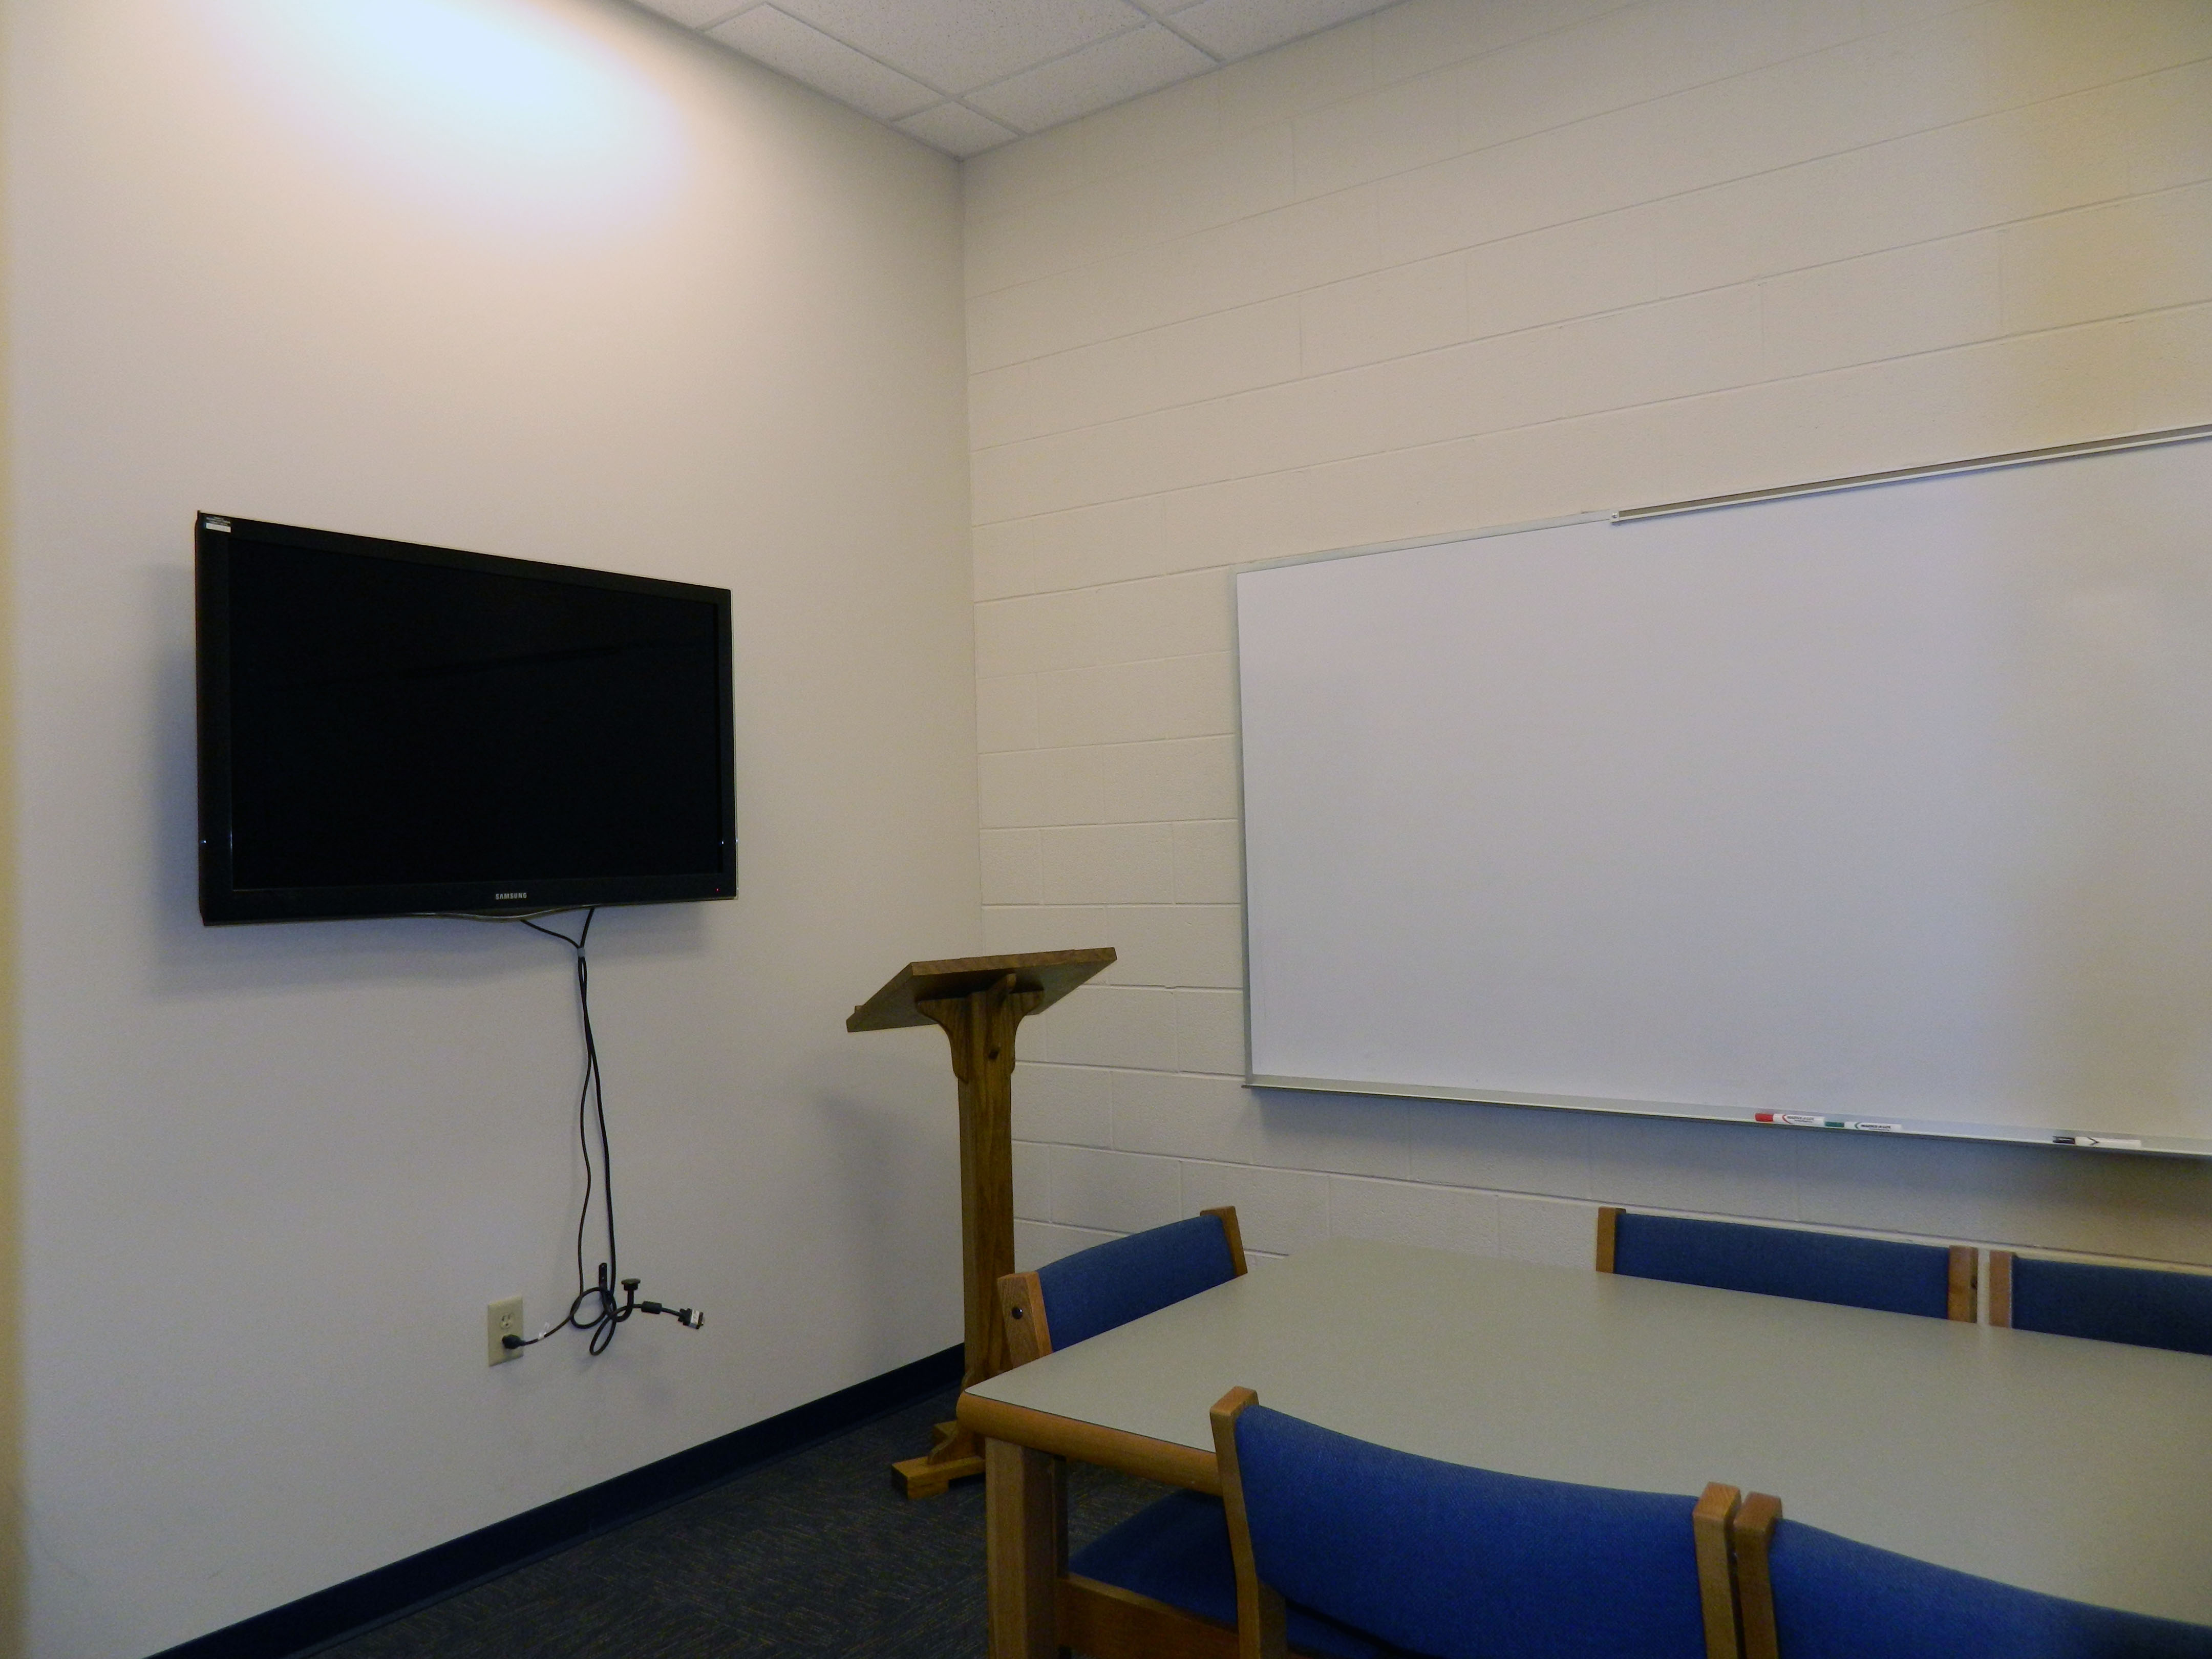 Blount County Group Study Room.  The room has a table and six chairs.  It has a dry erase board, podium and a monitor mounted on one wall.